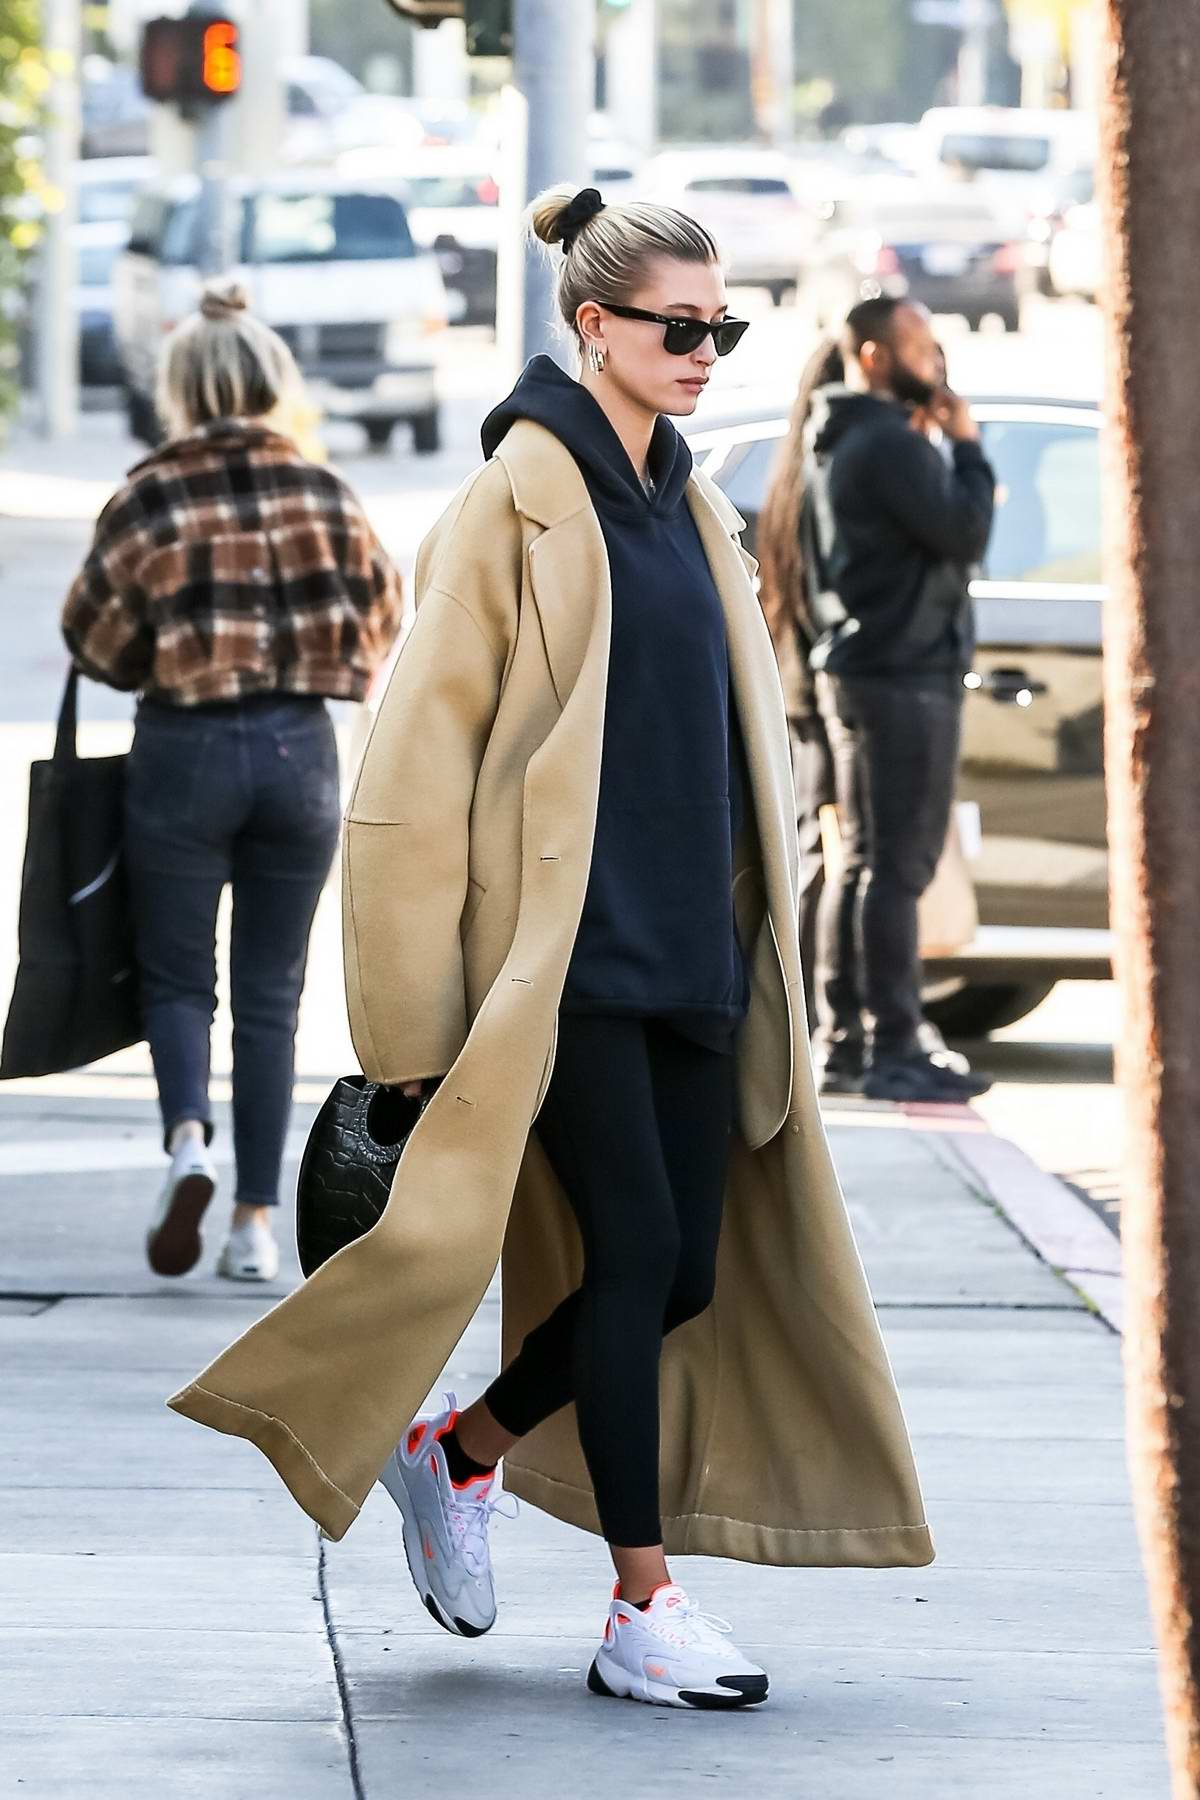 Hailey Bieber Stops By A Coffee Shop After Her Daily Workout Routine In Beverly Hills Los